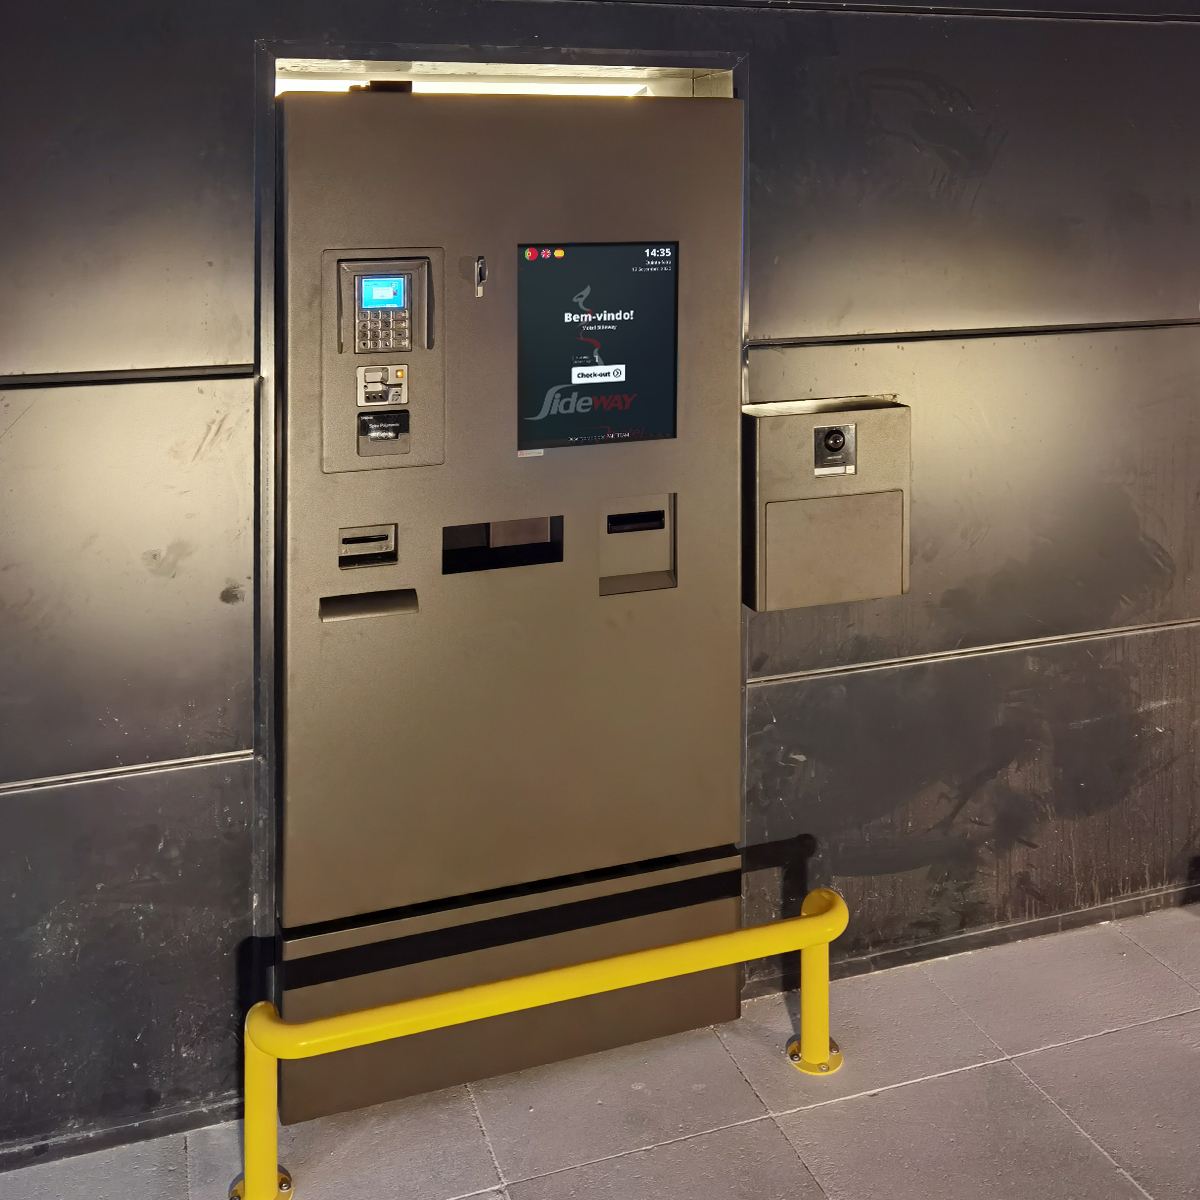 Sideway Motel uses PARTTEAM & OEMKIOSKS frictionless self-checkin and self-checkout kiosks for hotels